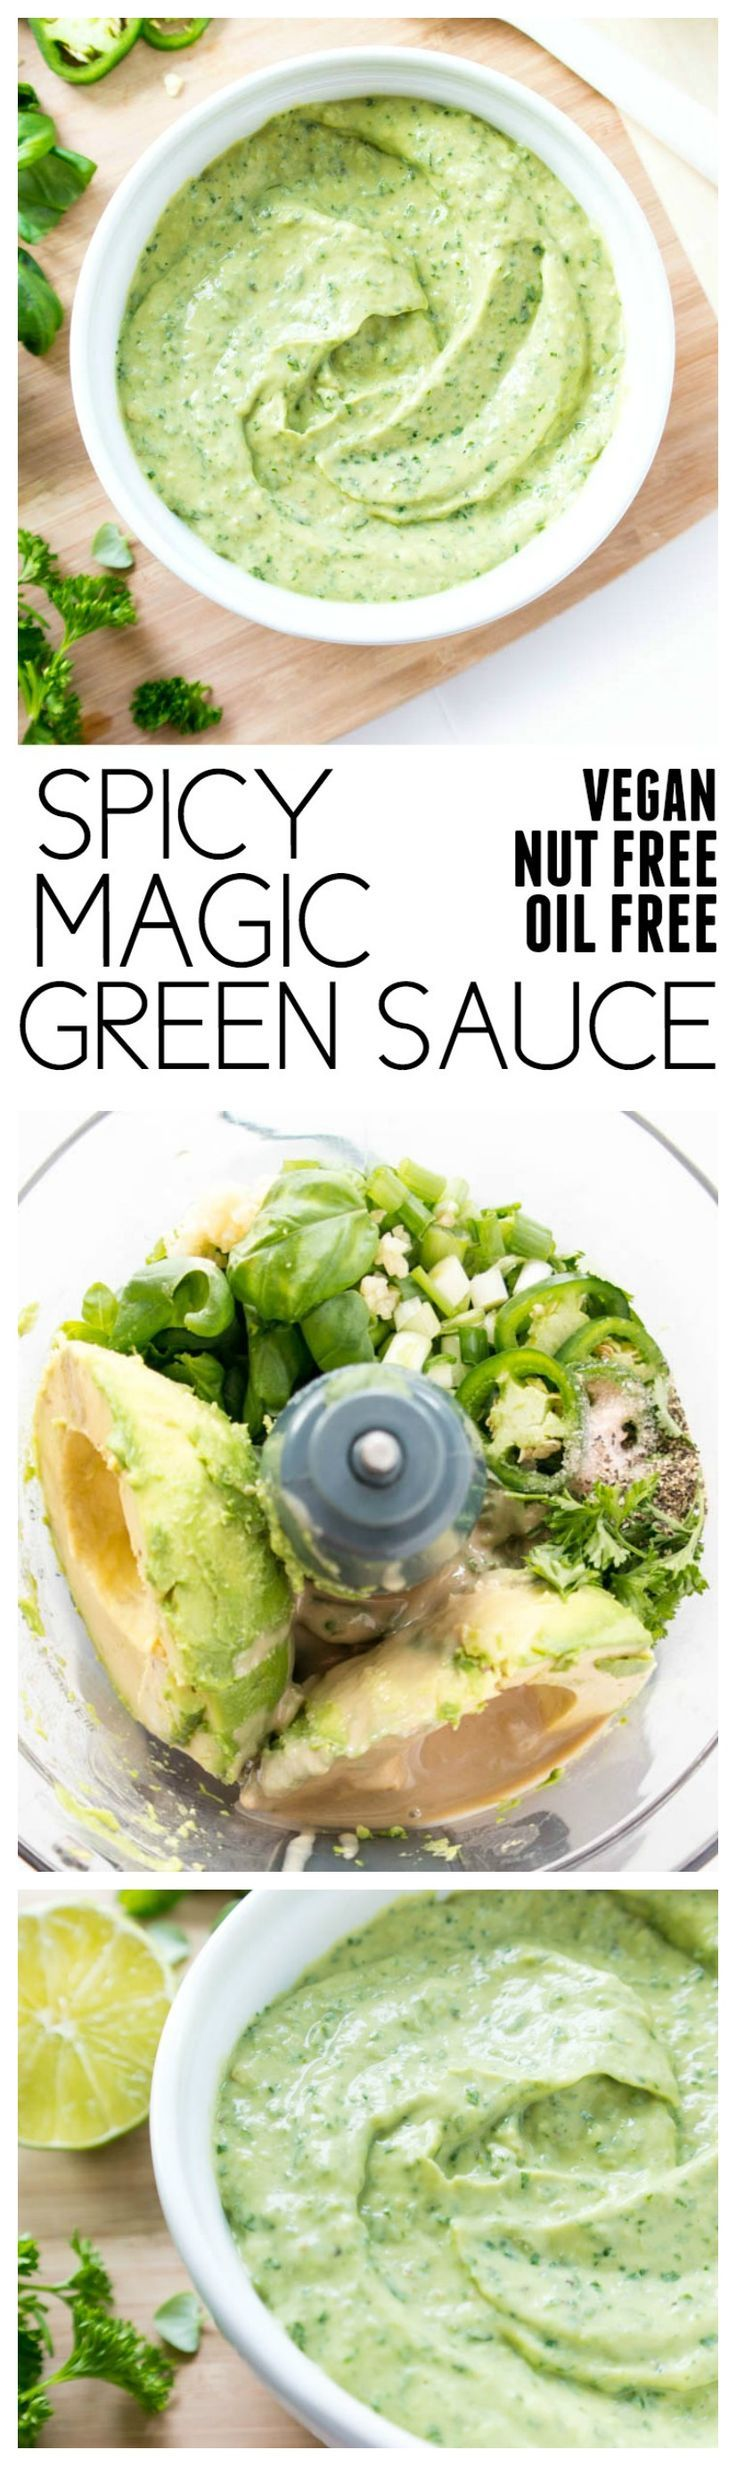 the most addicting sauce that you'll want to put on EVERYTHING! Spicy Magic Green Sauce. Vegan, Gluten Free, Oil Free, Nut Free. Complements all flavors, not just mexican flavors. Use as dipping sauce, sandwich spread, marinade, salad dressing, etc. #vegan #sauce